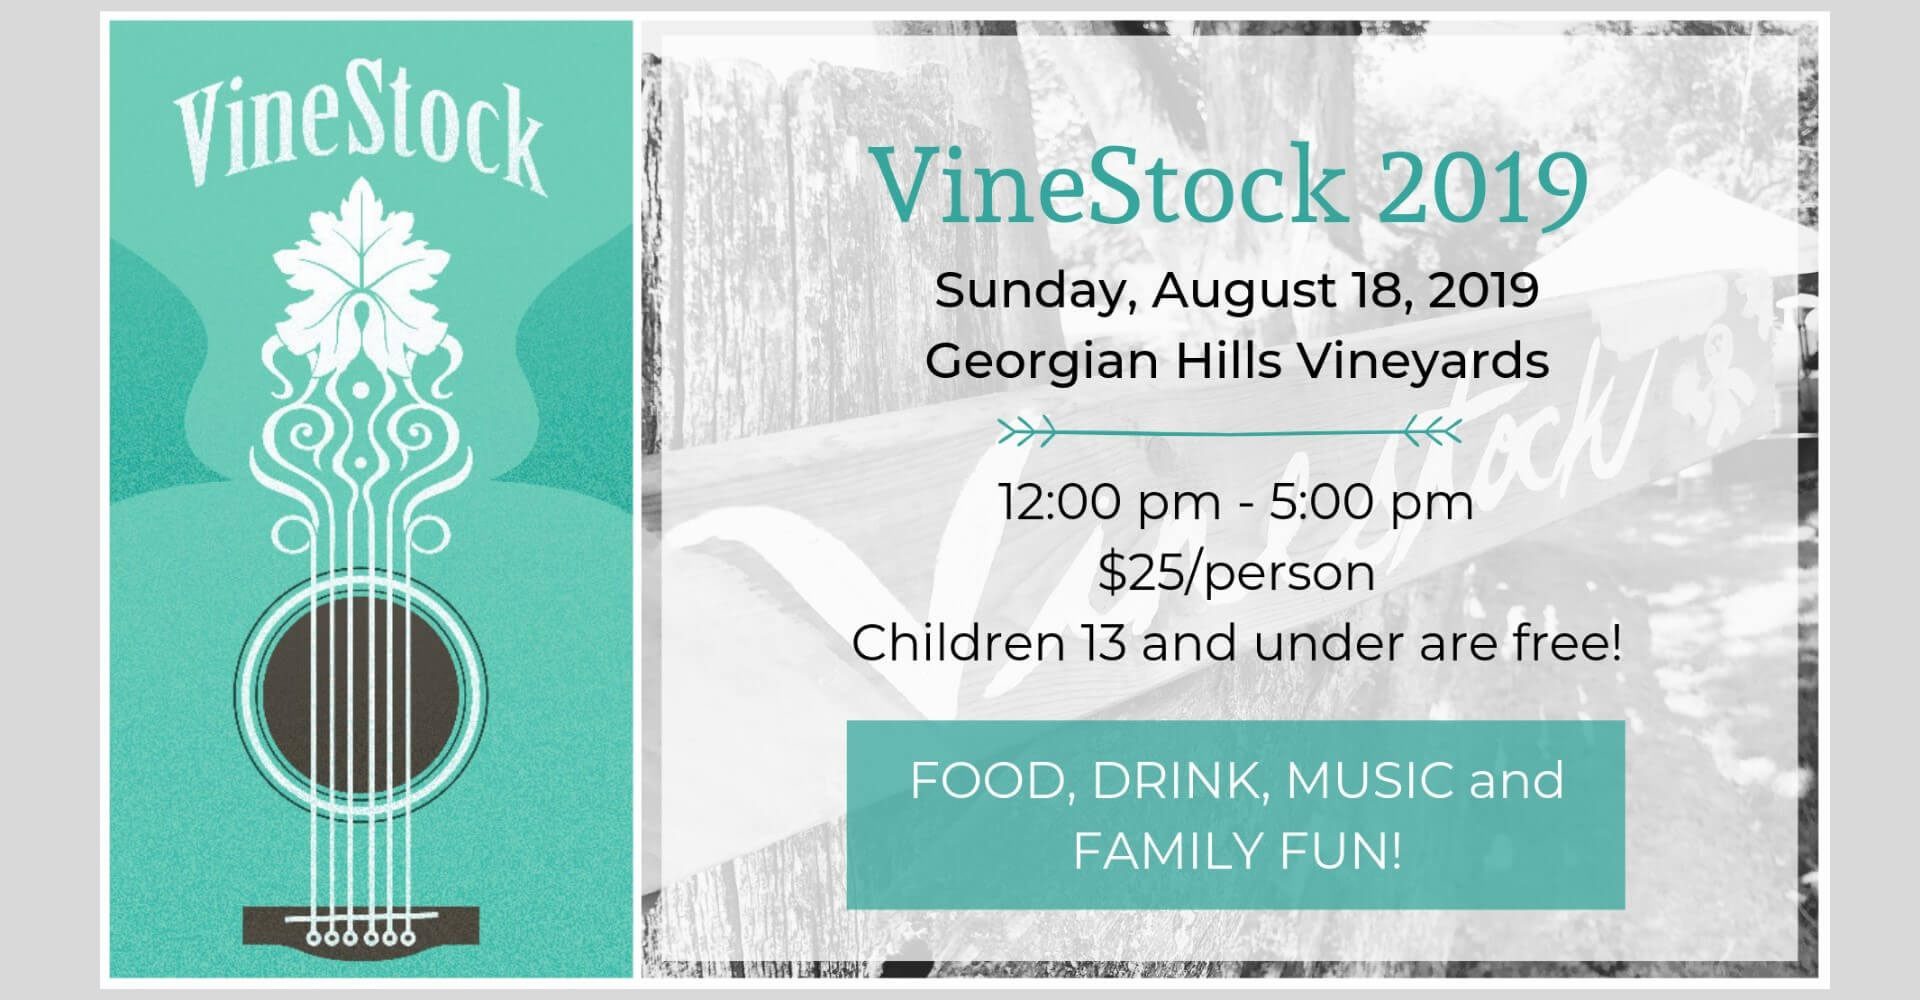 Vinestock georgian hills vineyard 2019